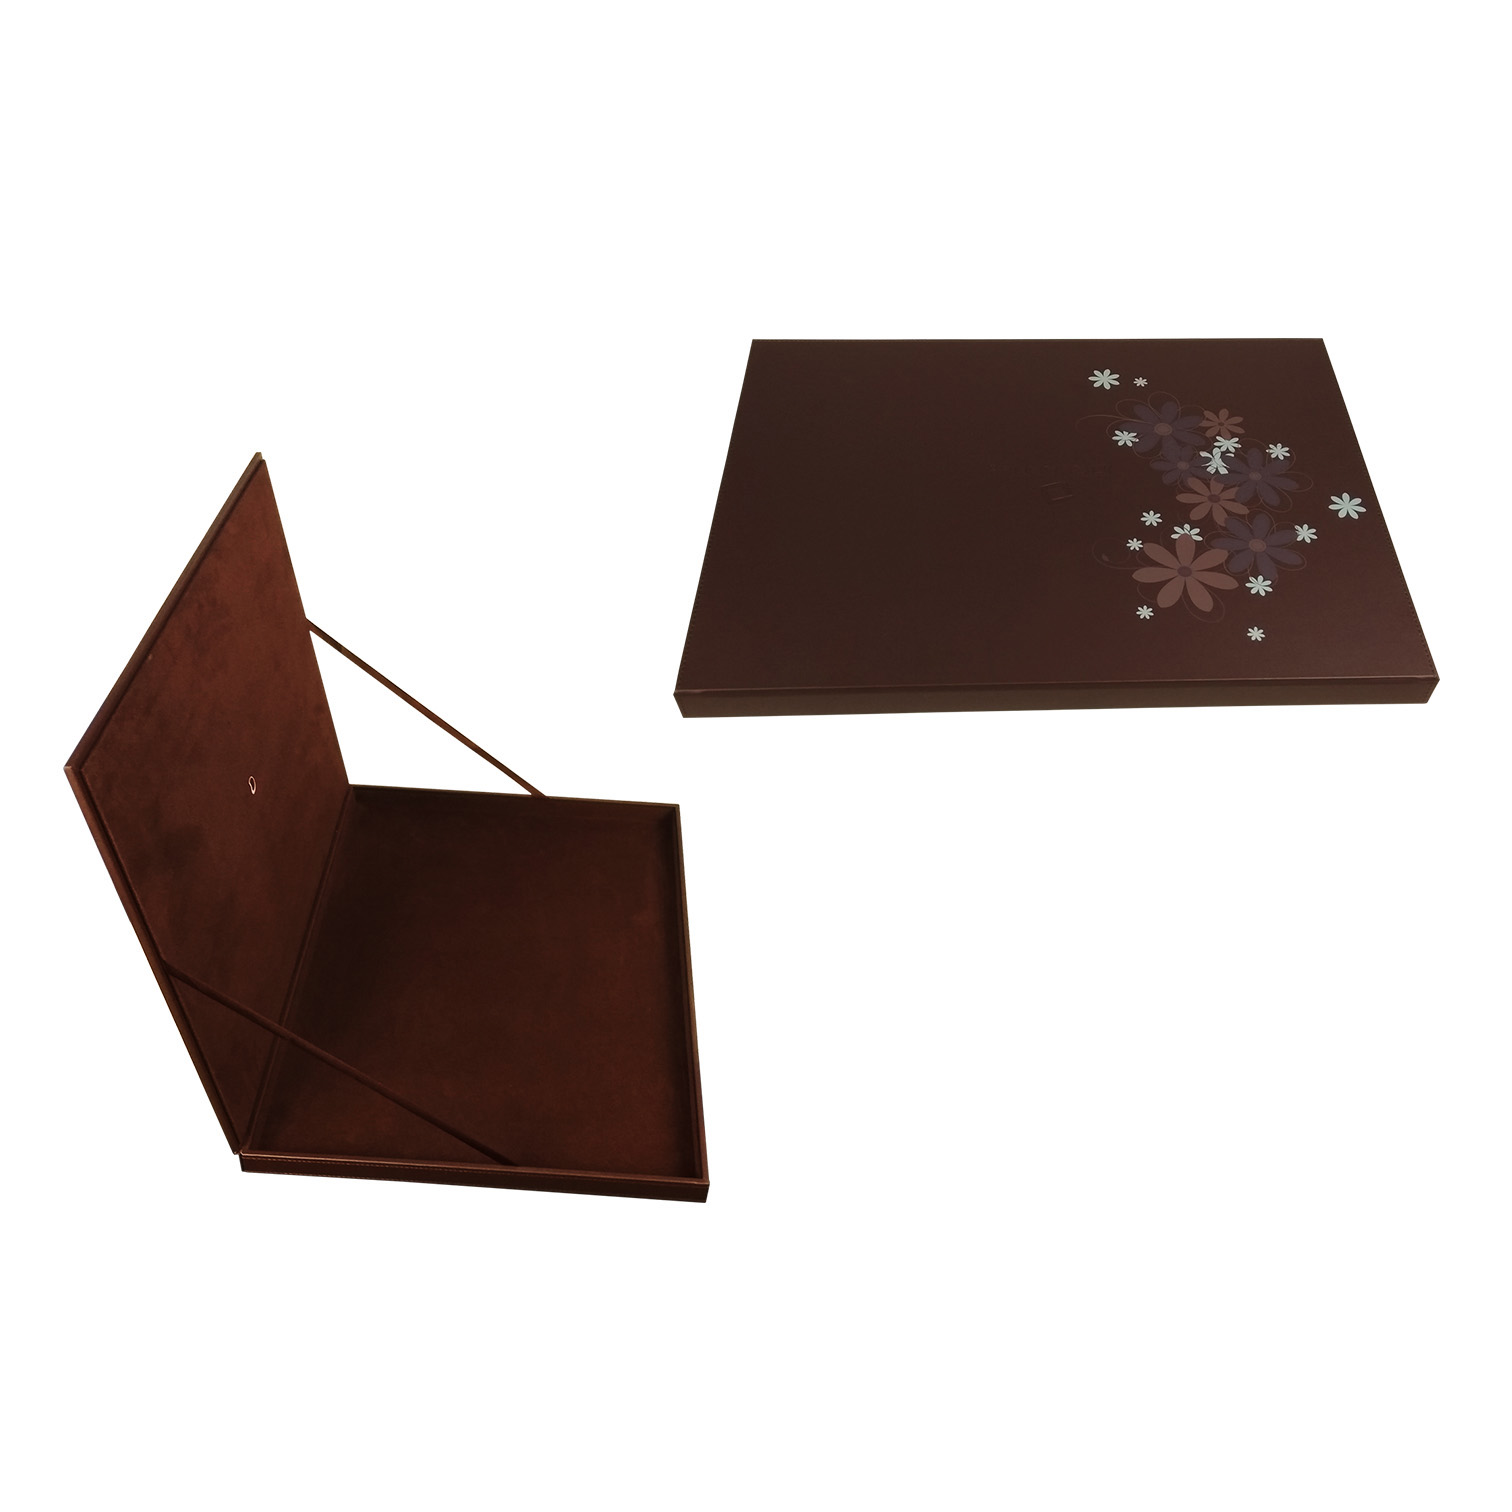 Exquisite fancy custom chocolate case brown leather chocolate box